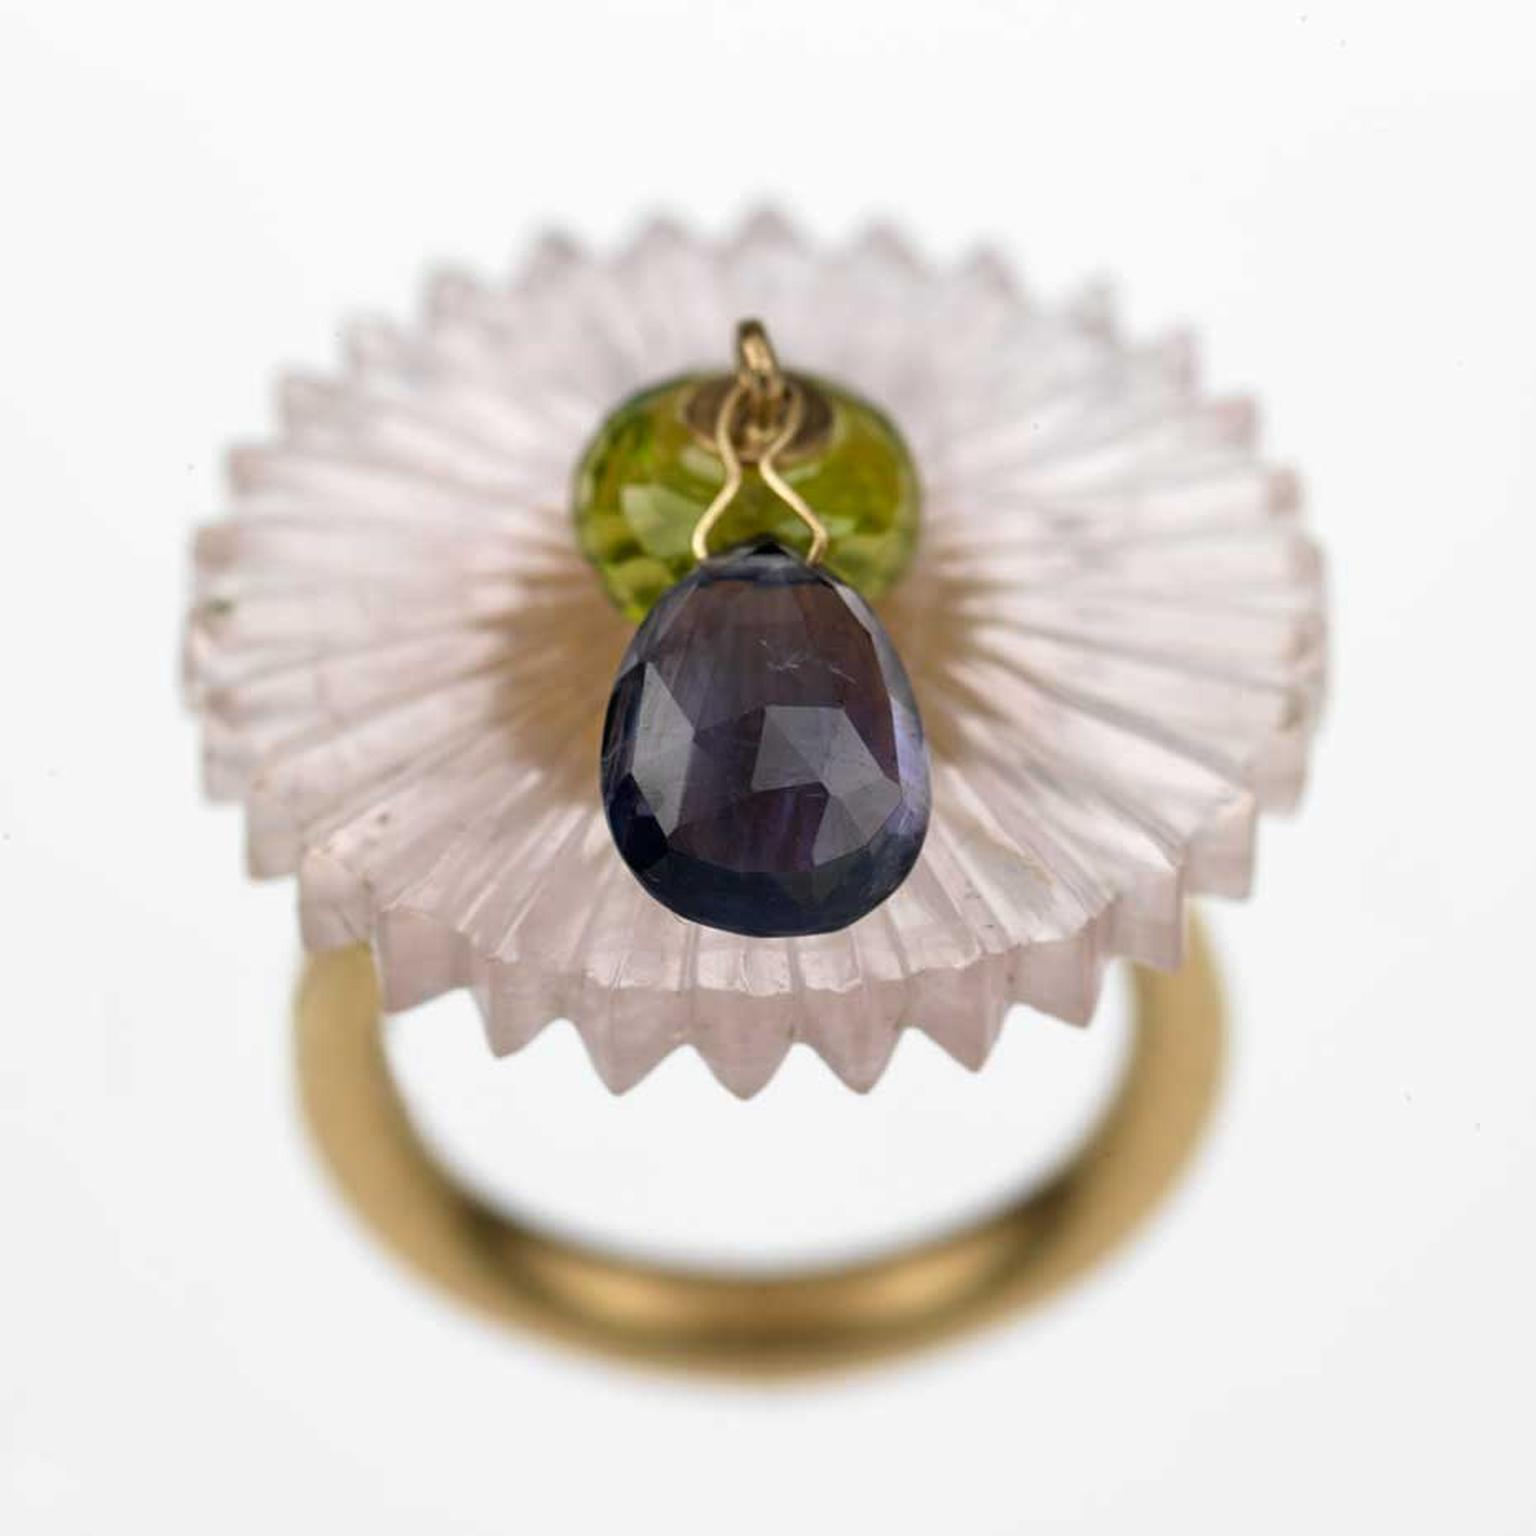 Alice Cicolini disk ring in gold with peridot bead and iolite drop from the Stone Temple series.